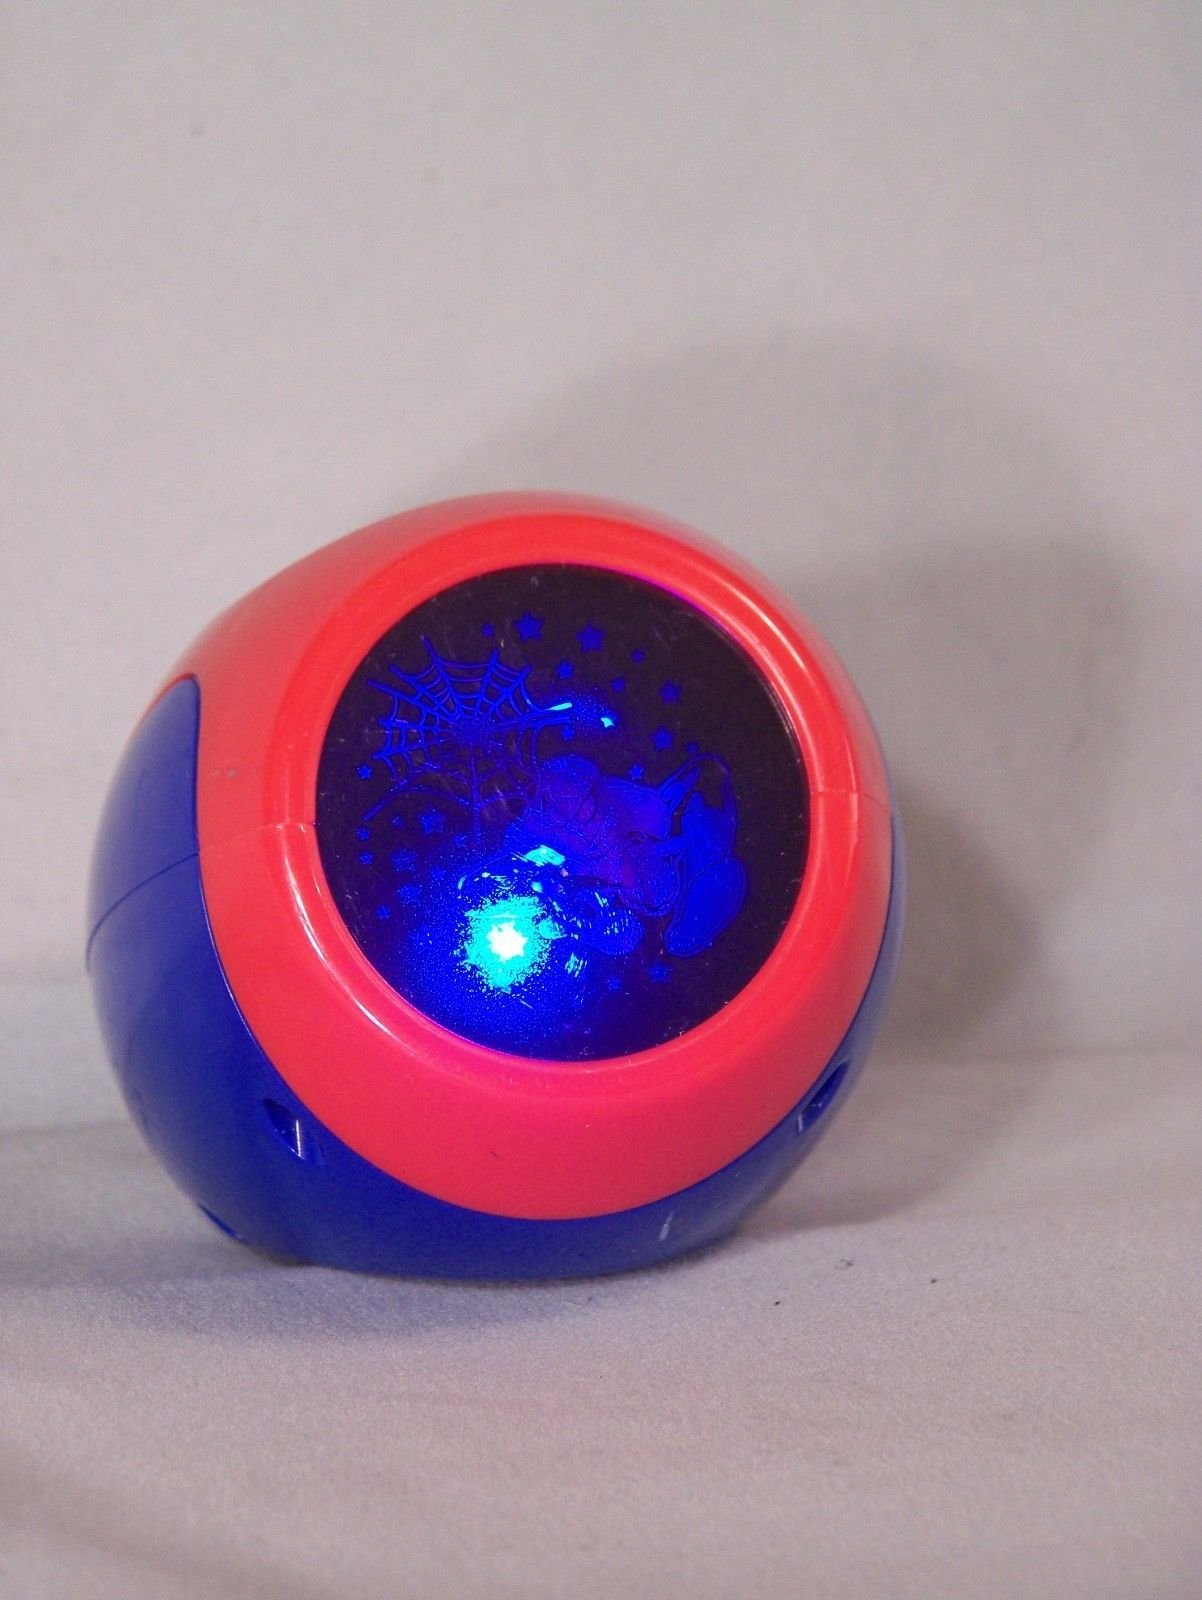 "Blip Toys SPIDER-MAN multi-colored light image projector, approx. 3"" tall"